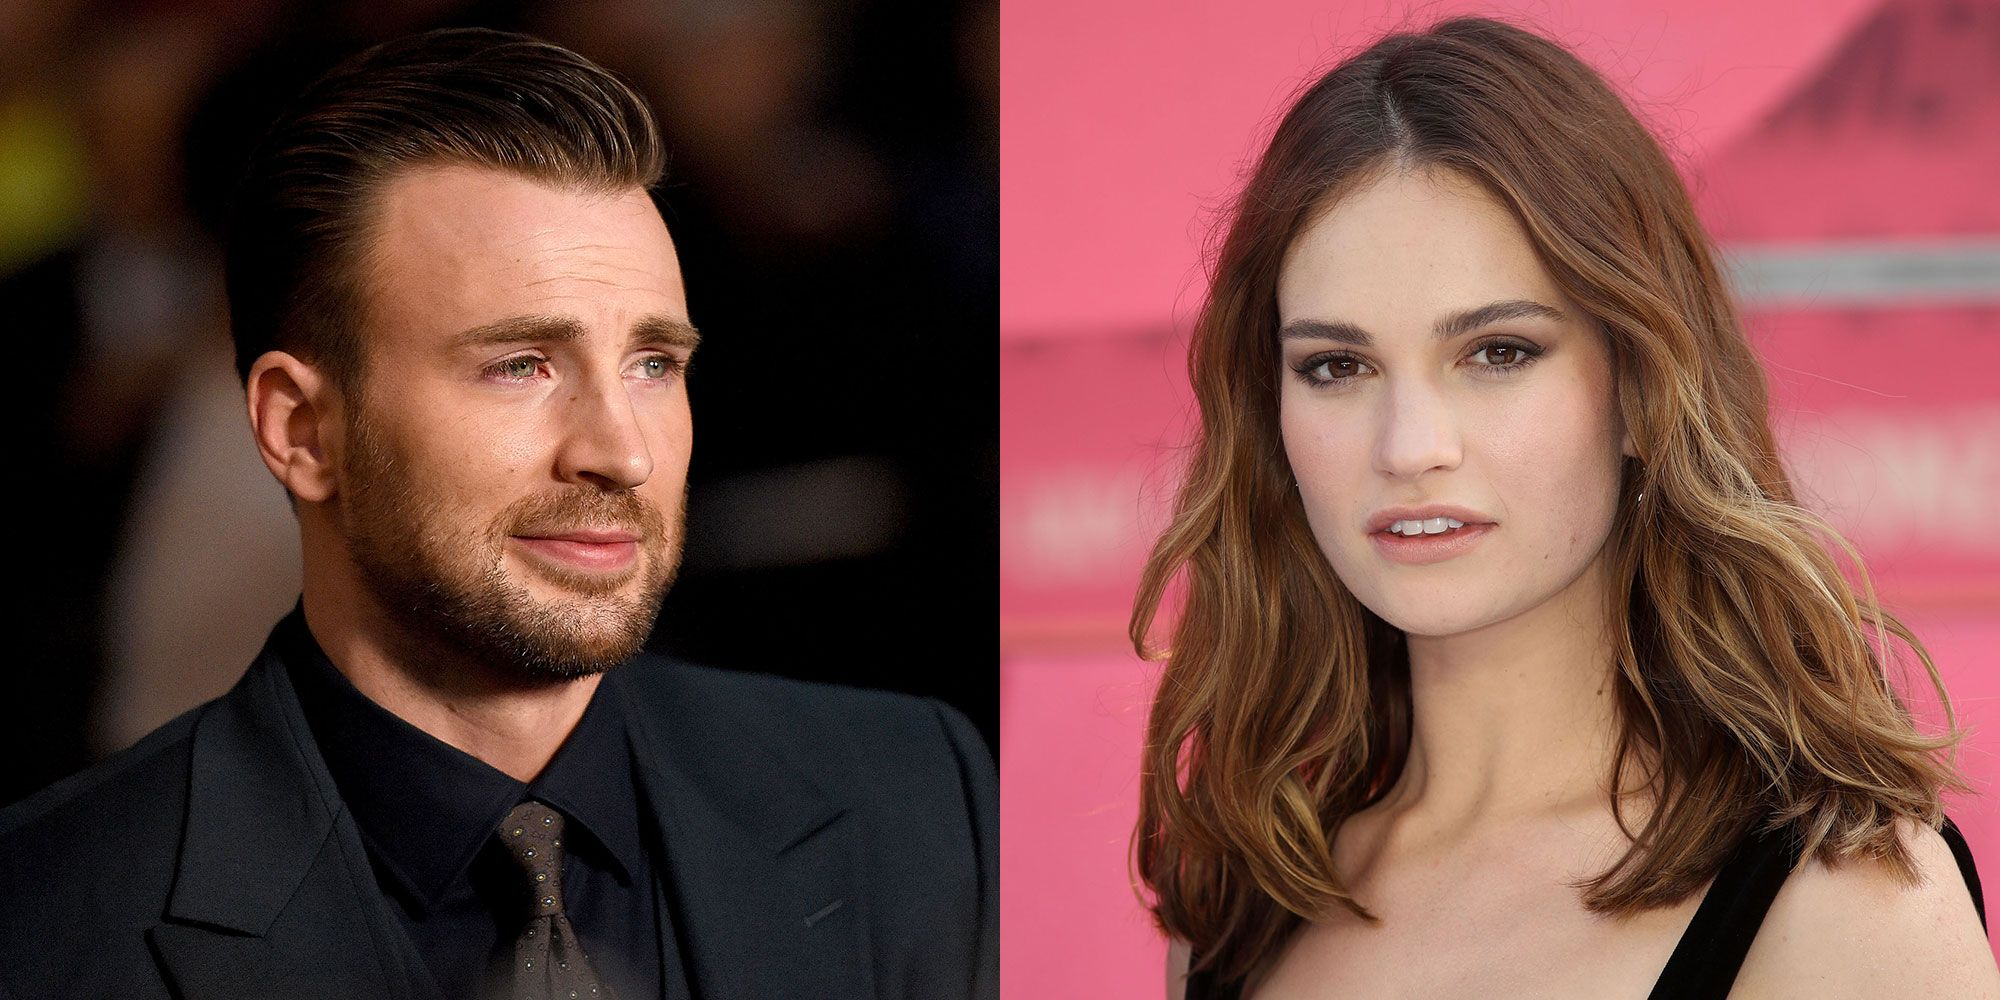 Chris Evans And Lily James Go On London Park Date Amid Dating Rumors Newsopener